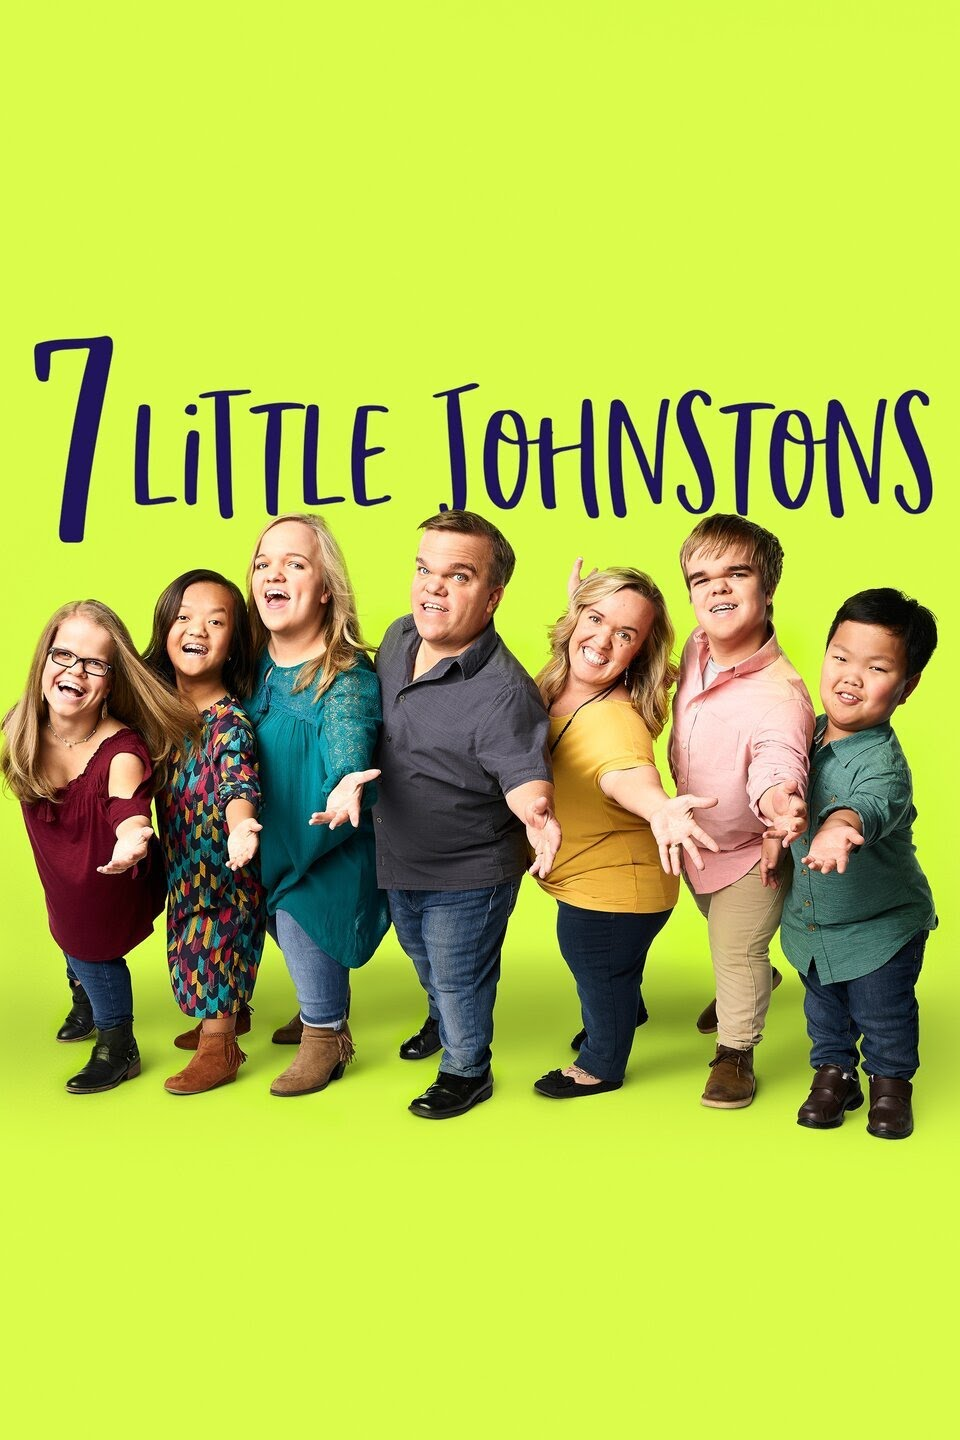 7 Little Johnstons Season 8 Episode 5 - Chasing Waterfalls